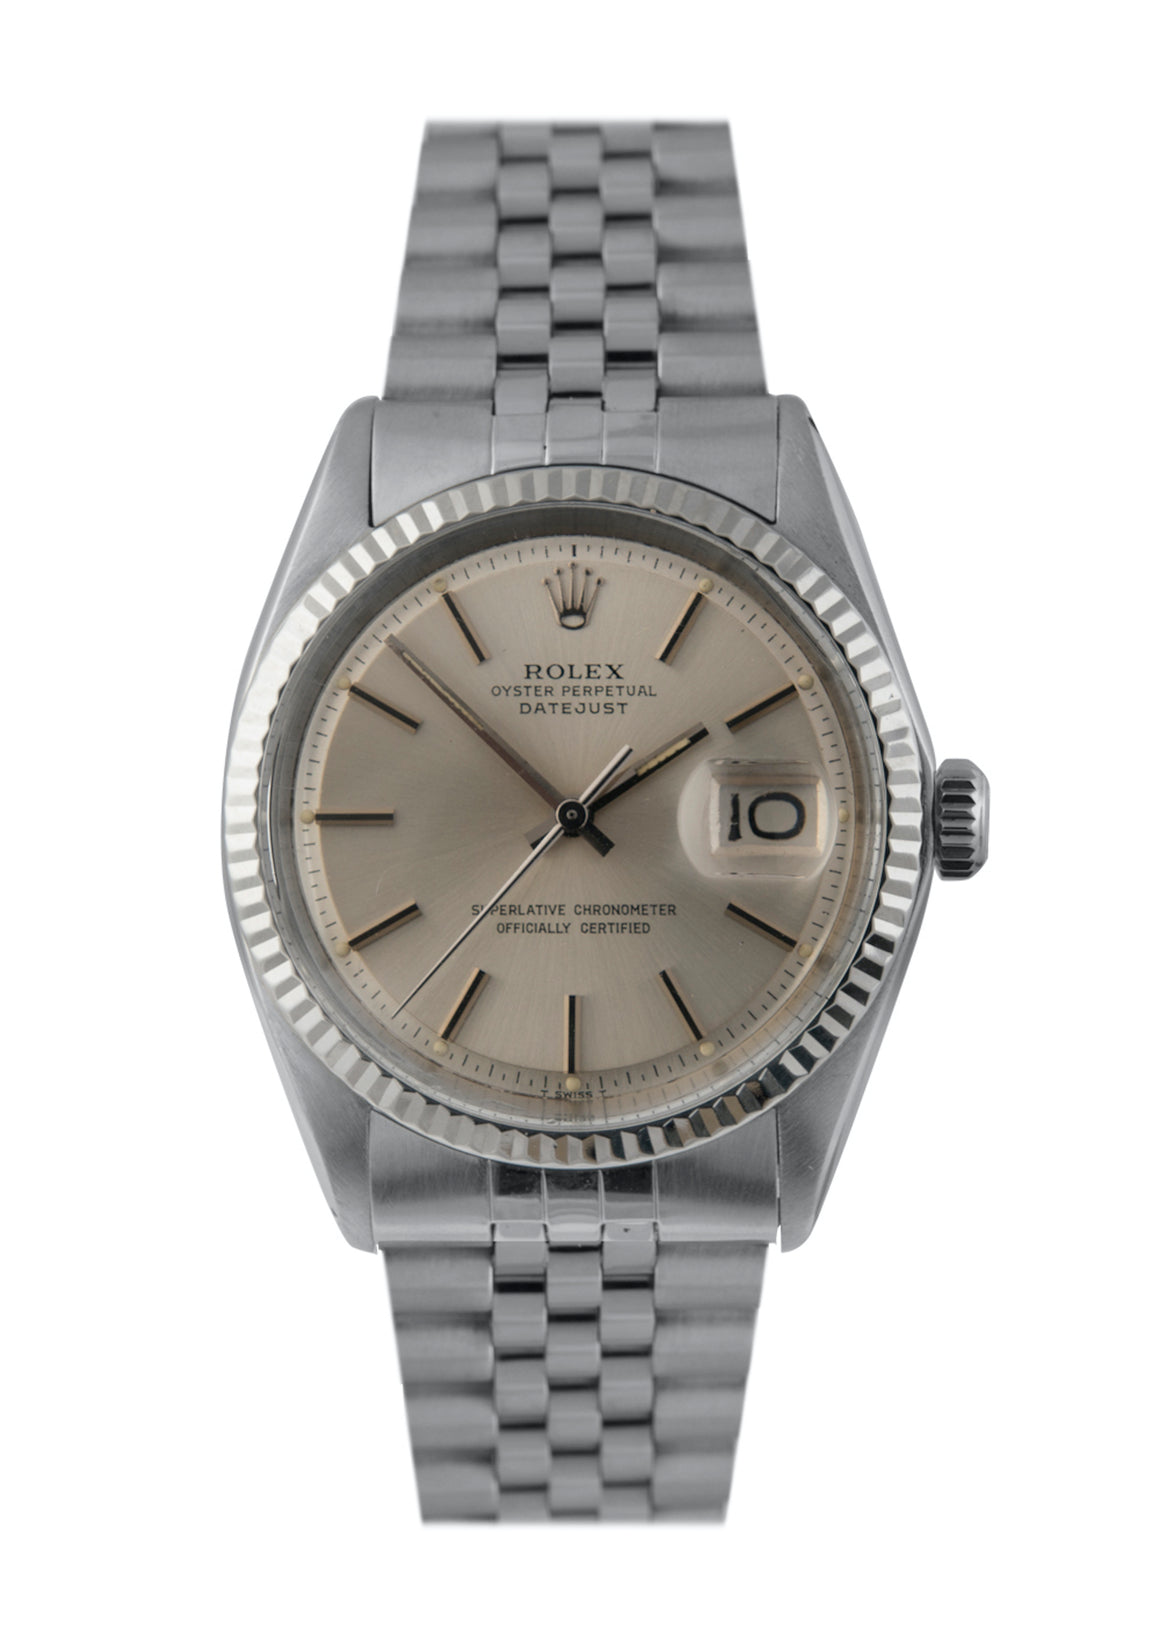 Rolex Vintage Steel Datejust Watch with Original Papers, Ref: 1601